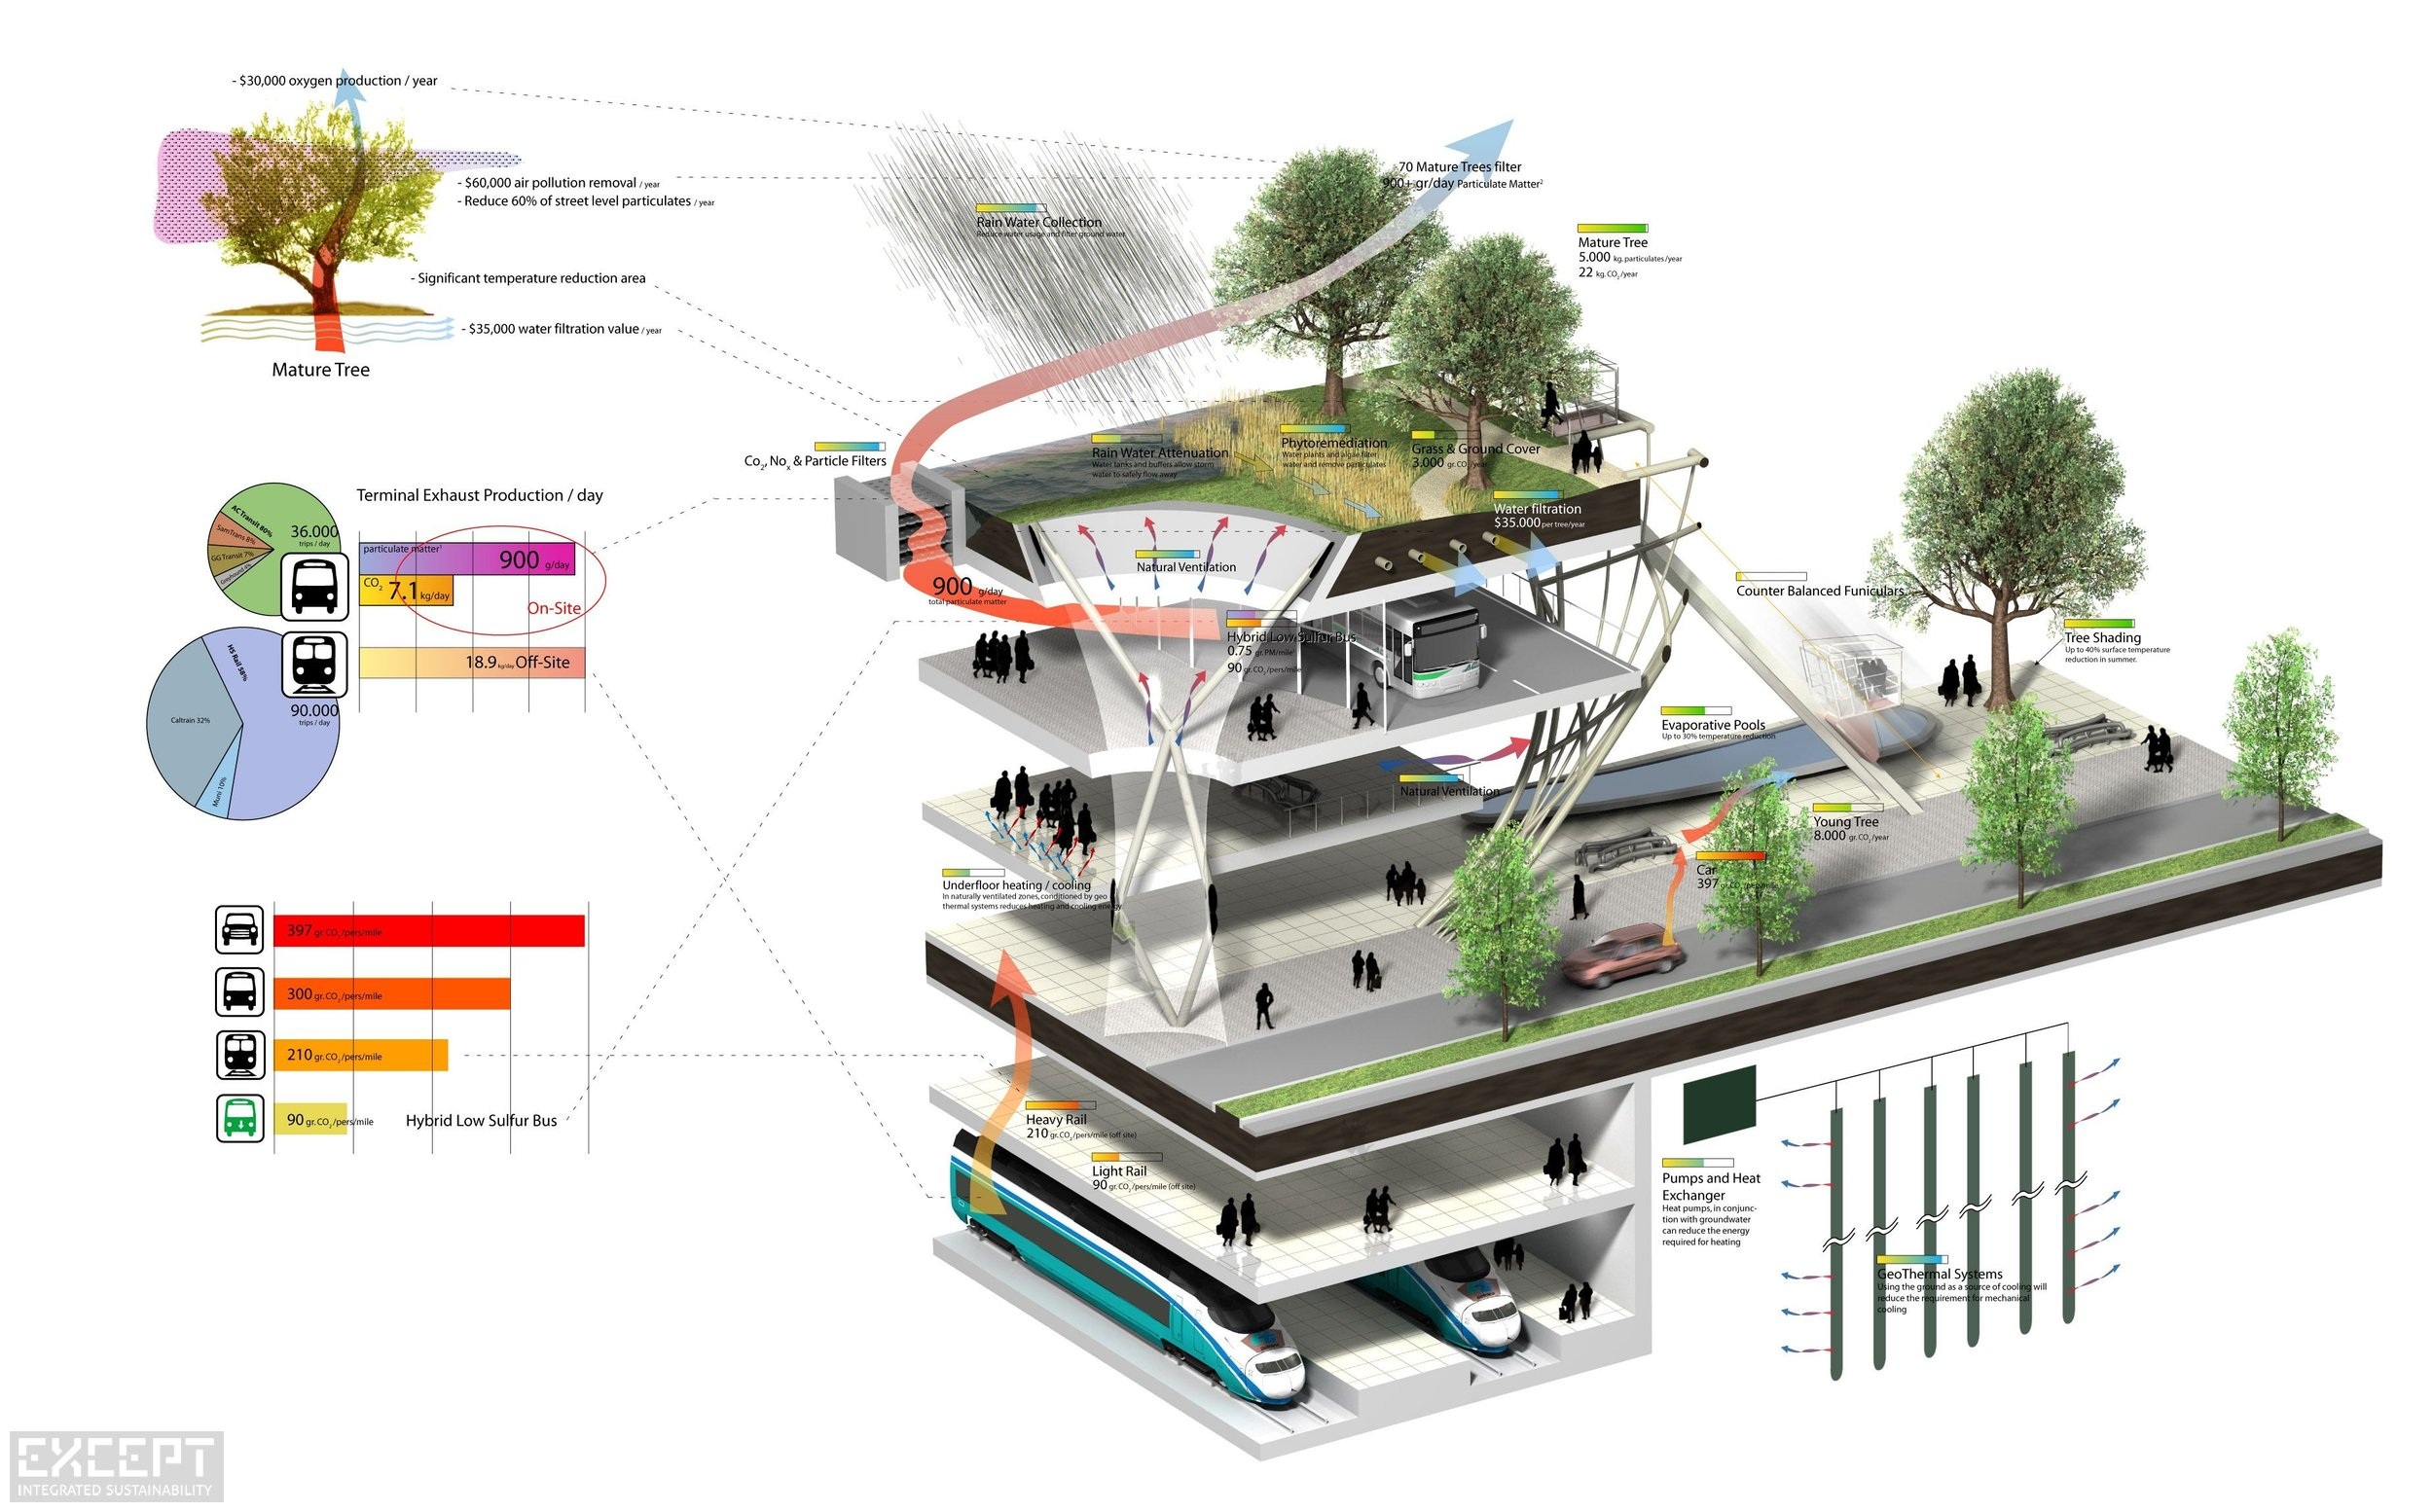 San-Francisco Transbay Terminal - This isometric diagram shows the vertical integration of services